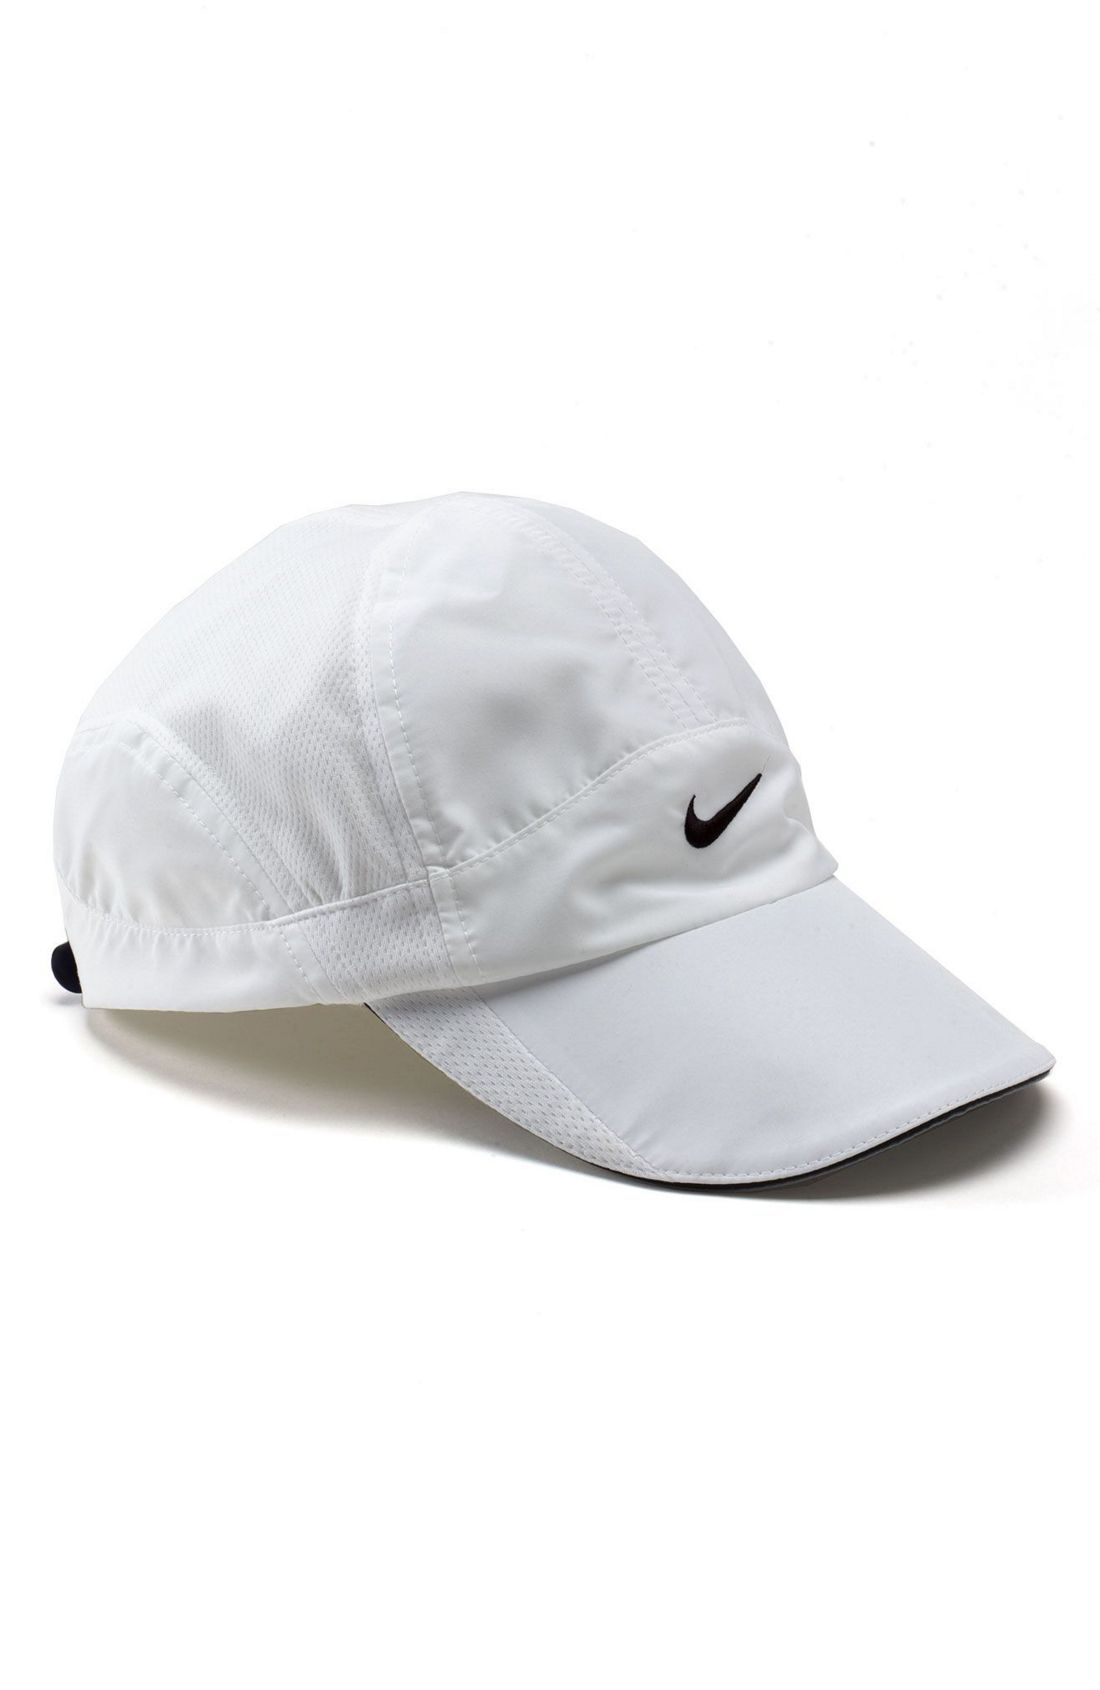 nike feather light cap in white end of color list white lyst. Black Bedroom Furniture Sets. Home Design Ideas